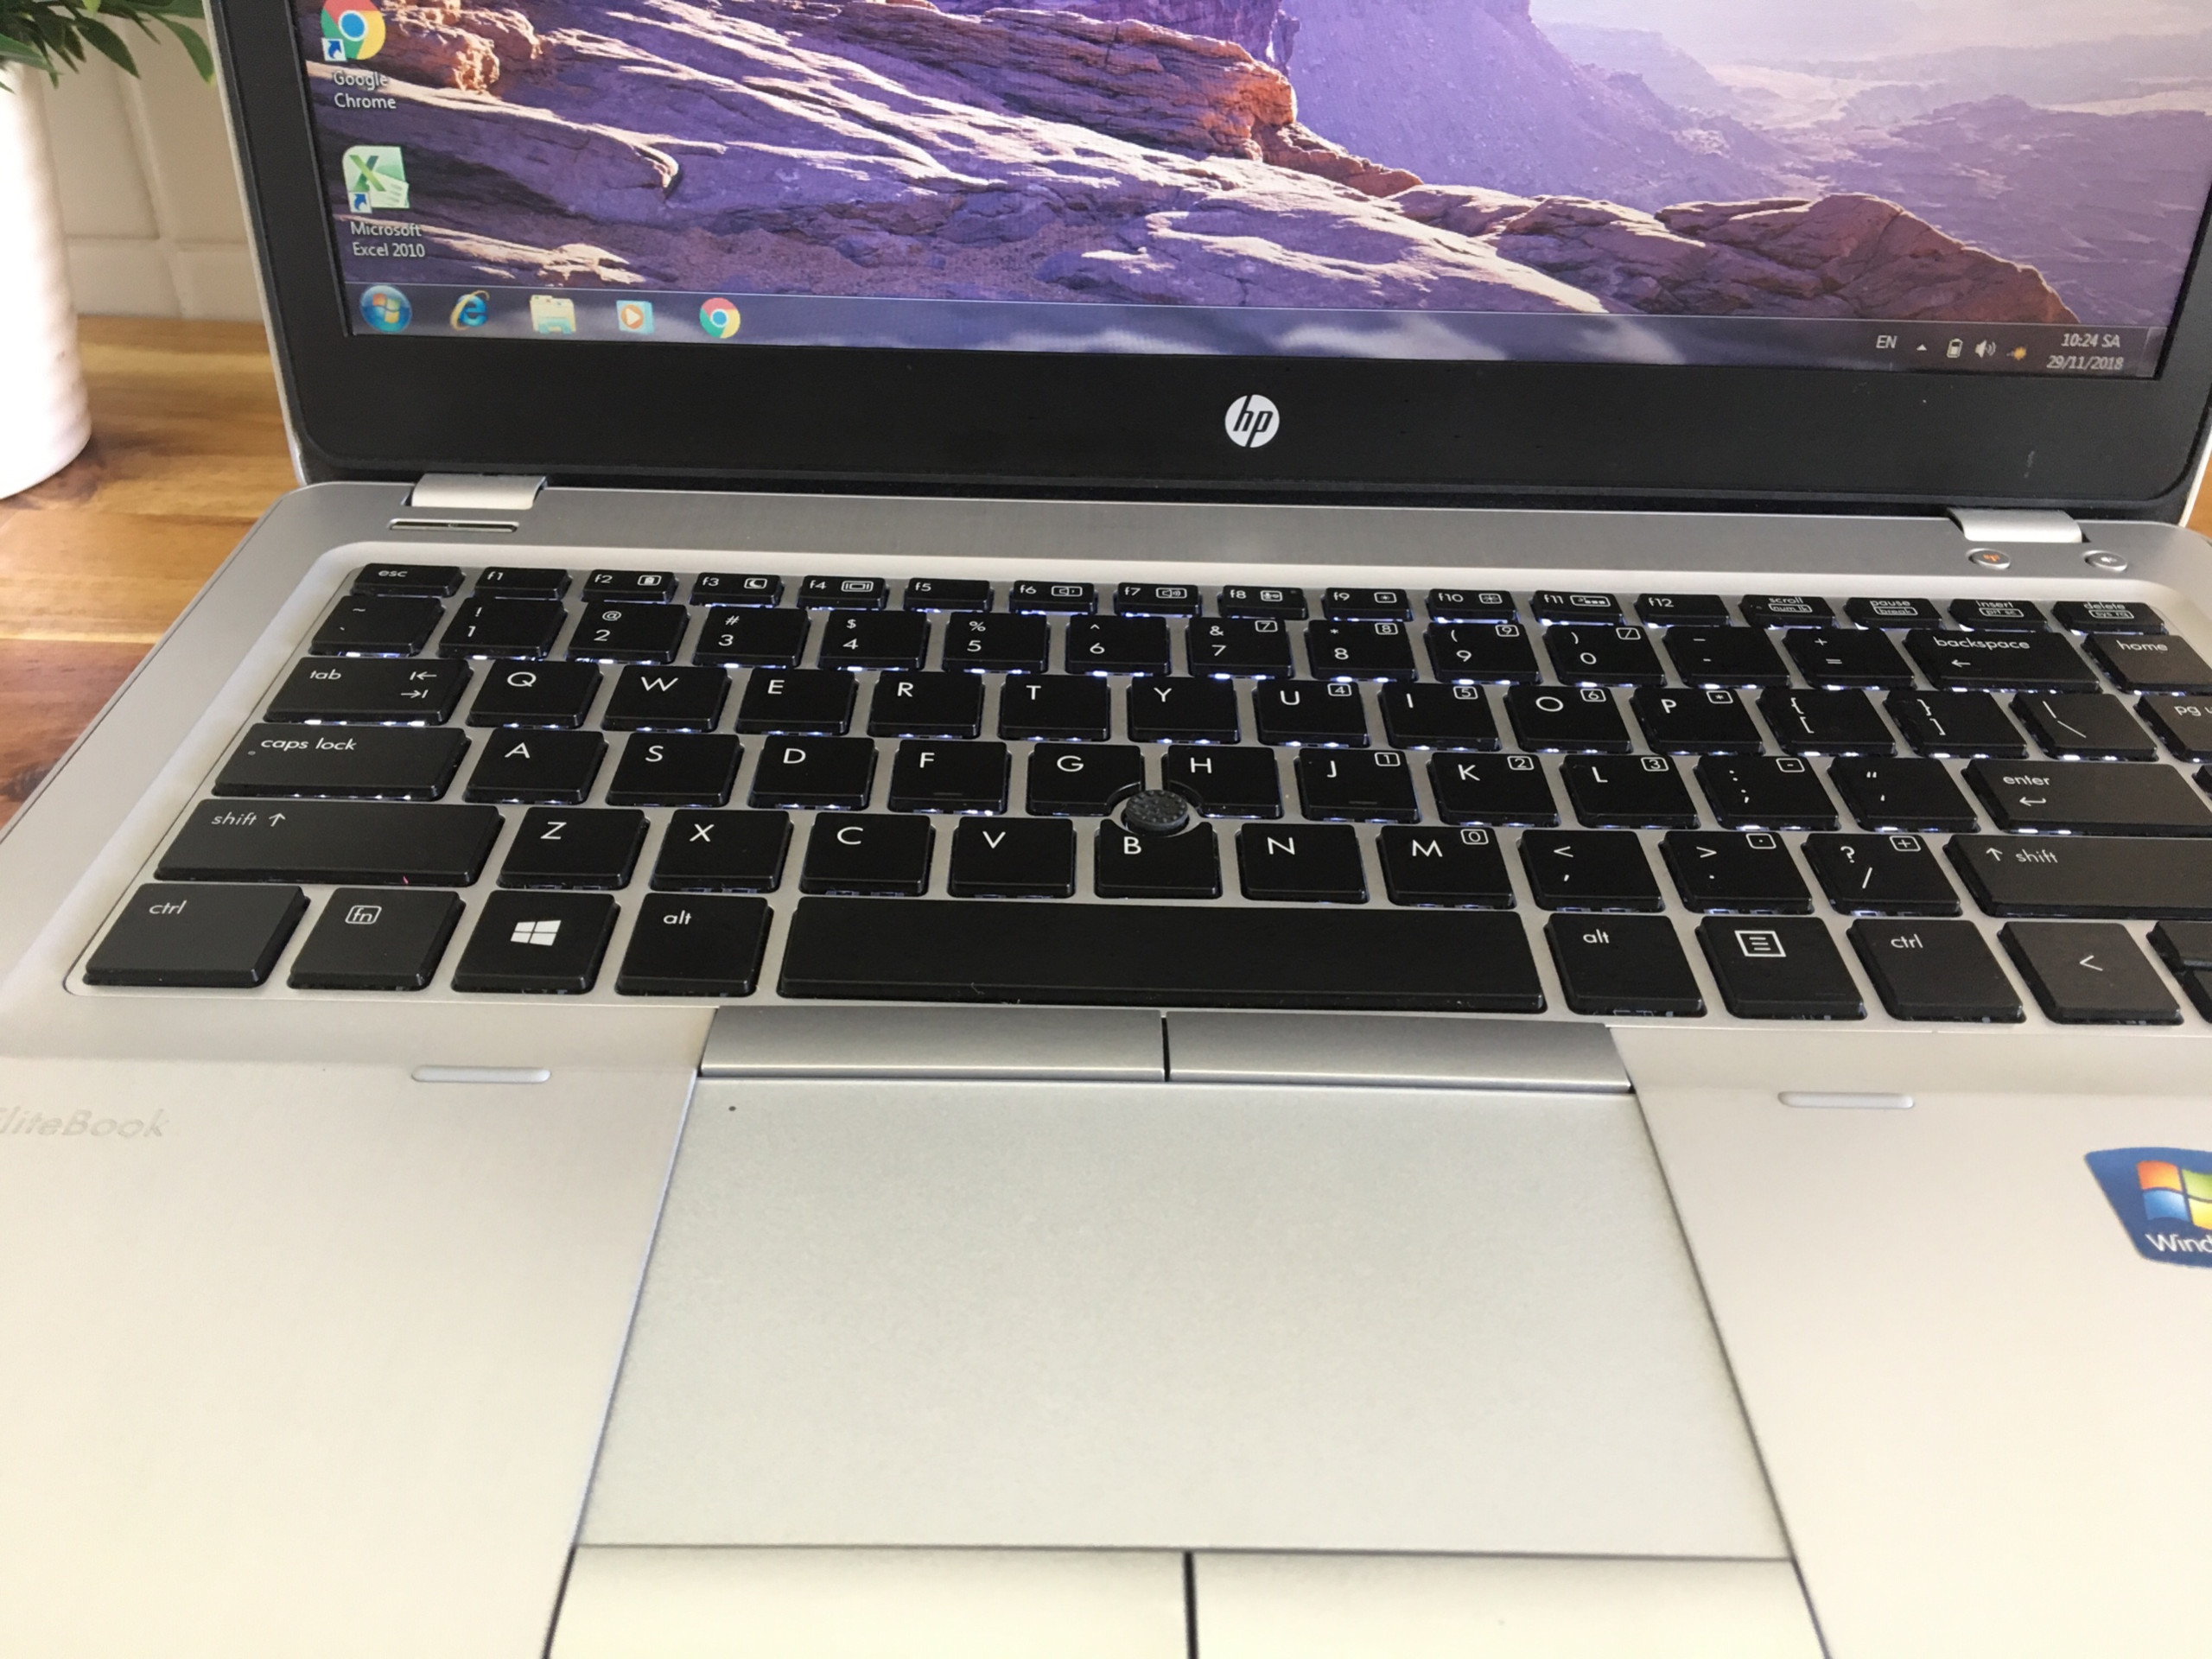 HP Folio 9470M i5 SSD 128GB